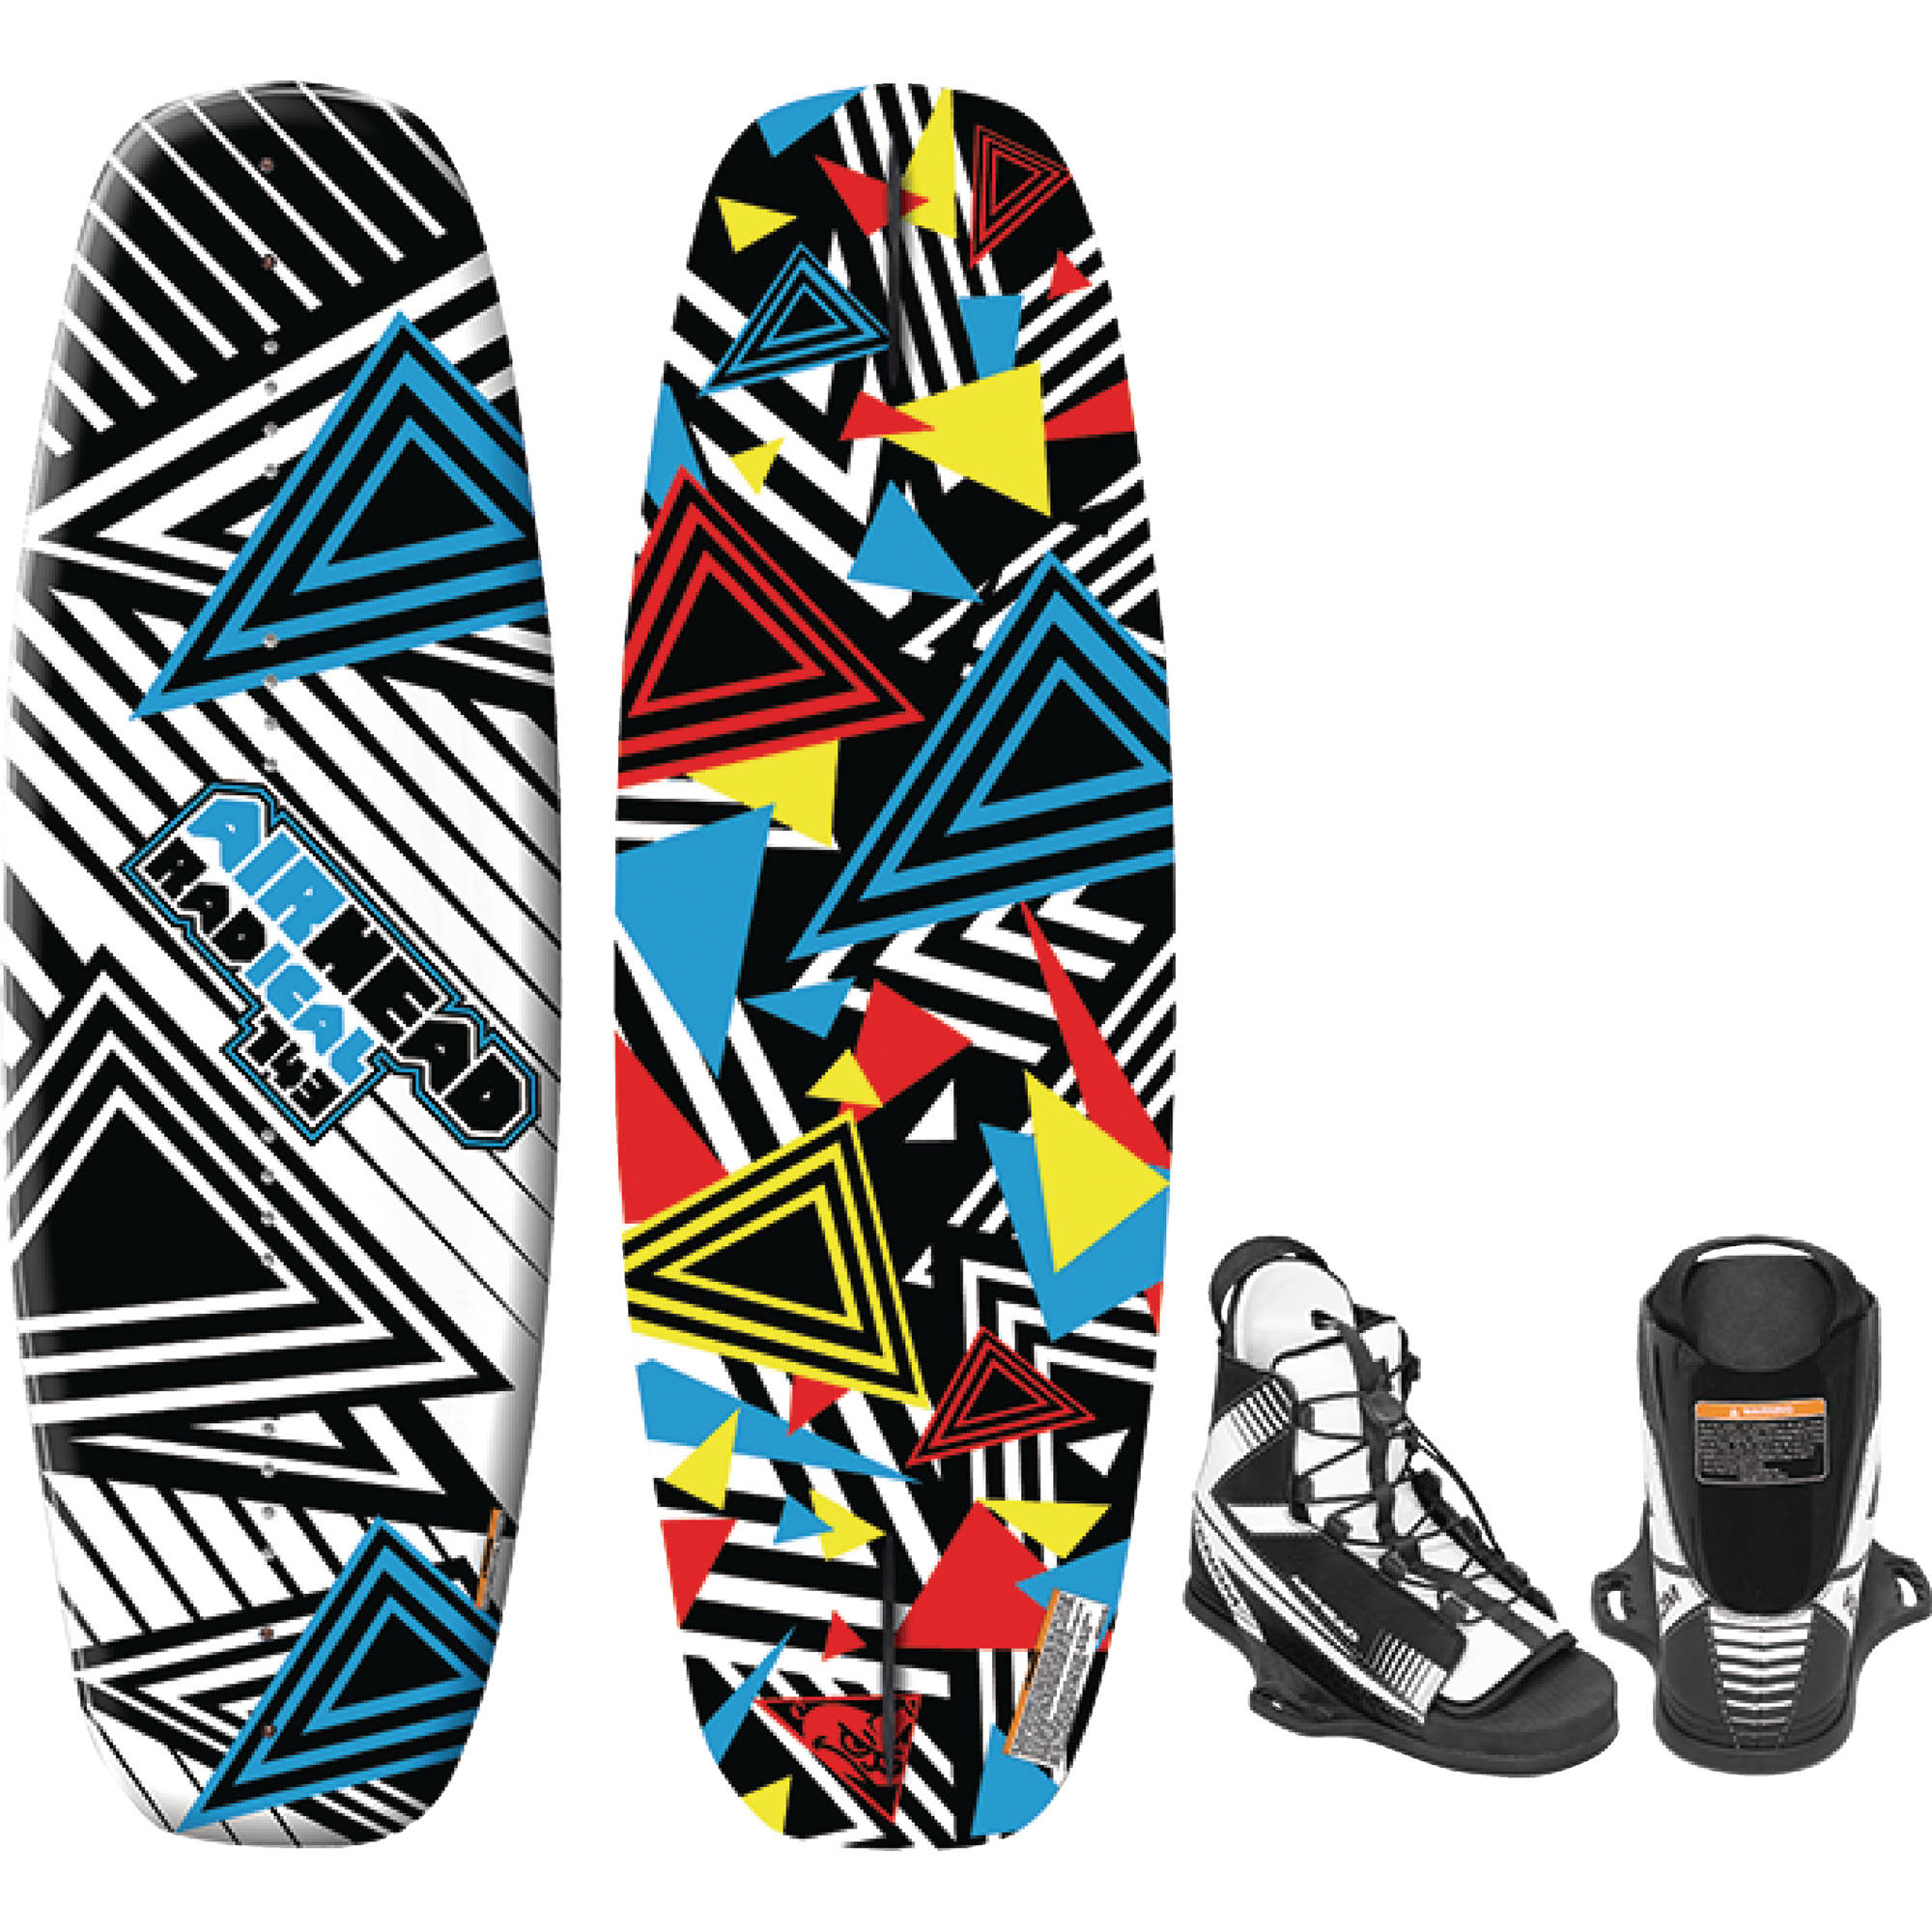 Airhead AWH-3020 RADICAL Wakeboard for Riders 150 lbs and up, Venom Bindings Size 9 to 12 AWH3020-2